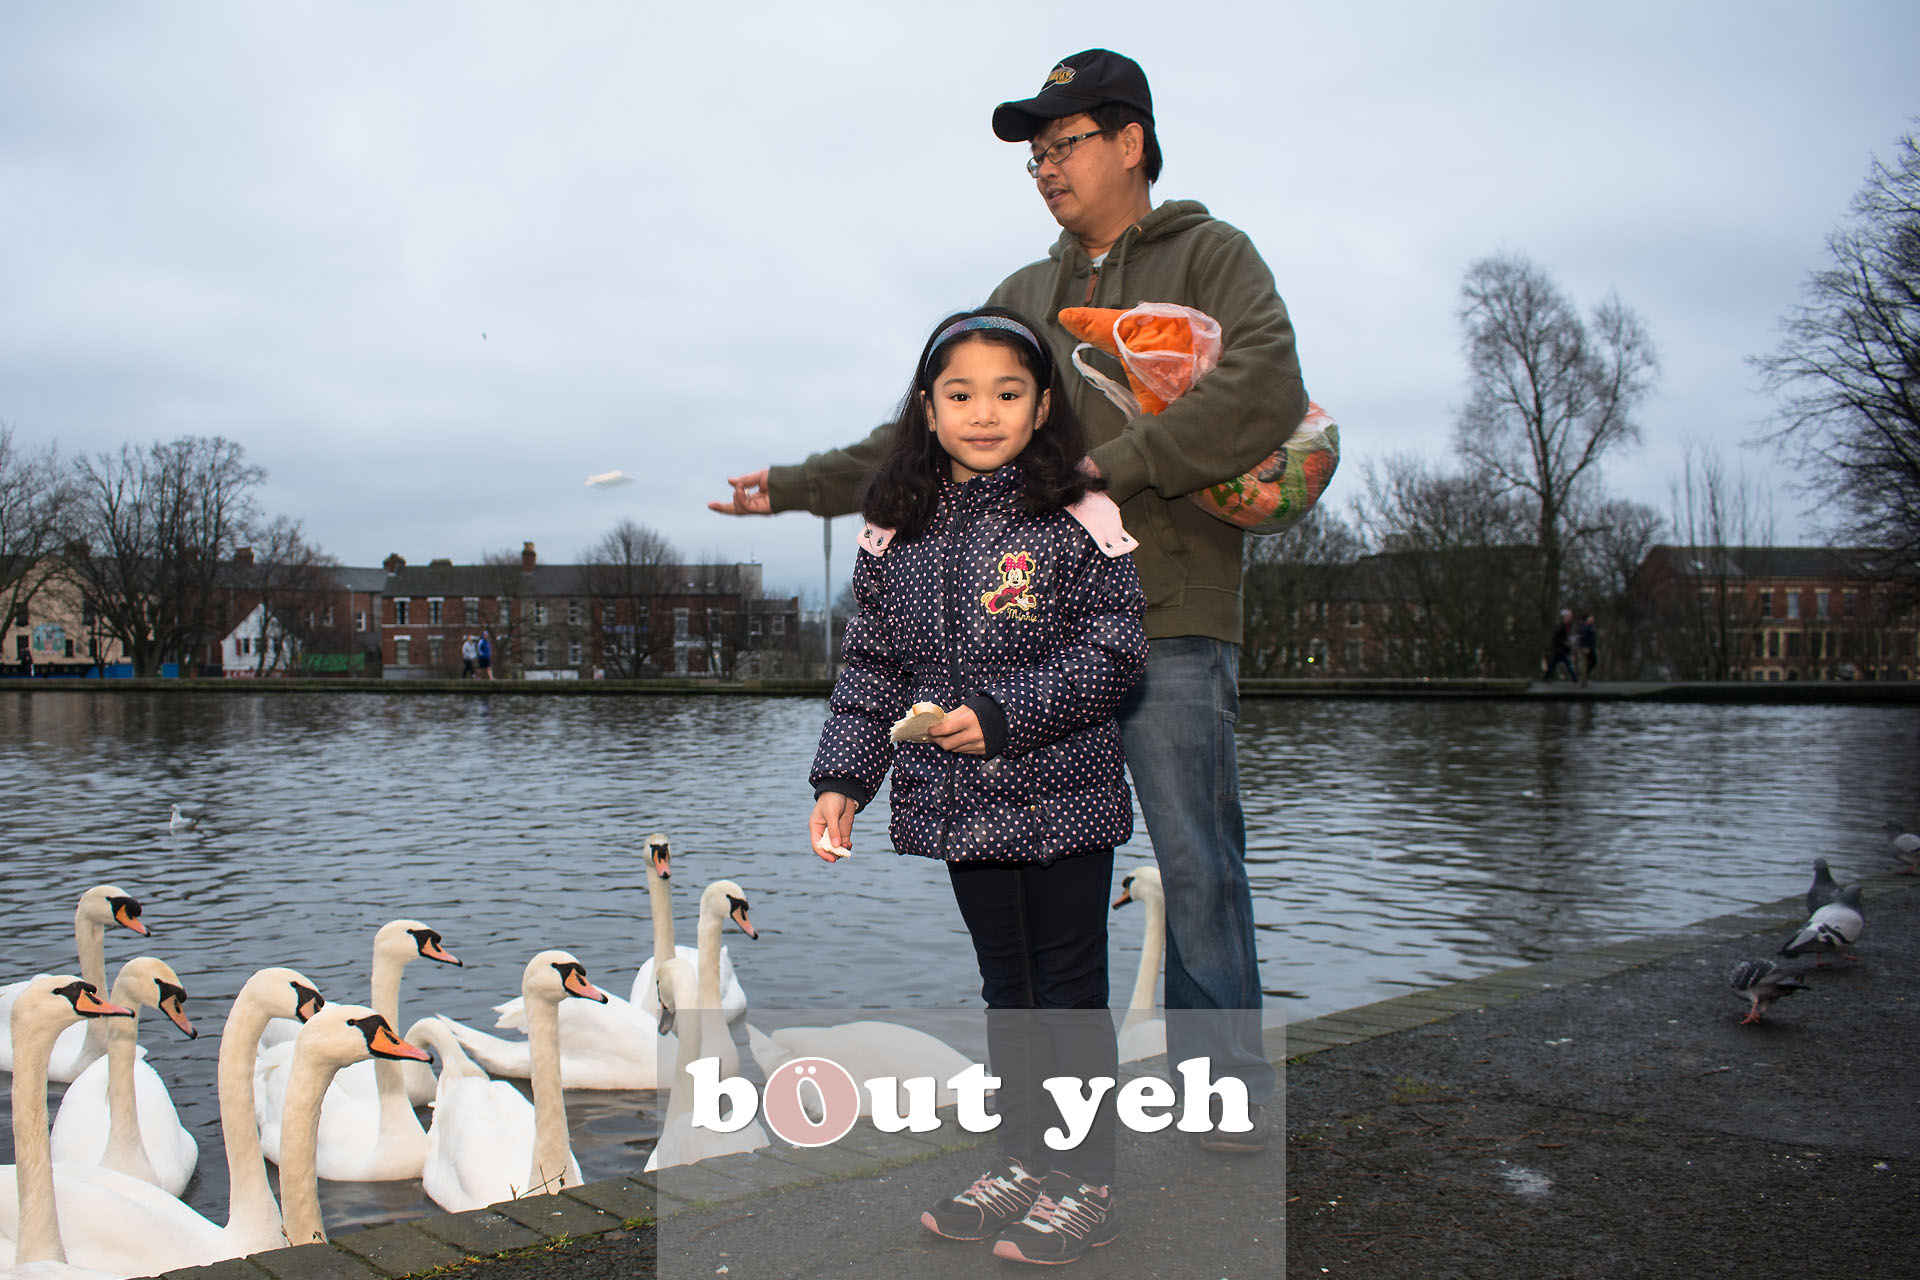 Young girl and father feeding swans at Waterworks, Belfast, Northern Ireland - bout yeh photographers Belfast photo 3971.